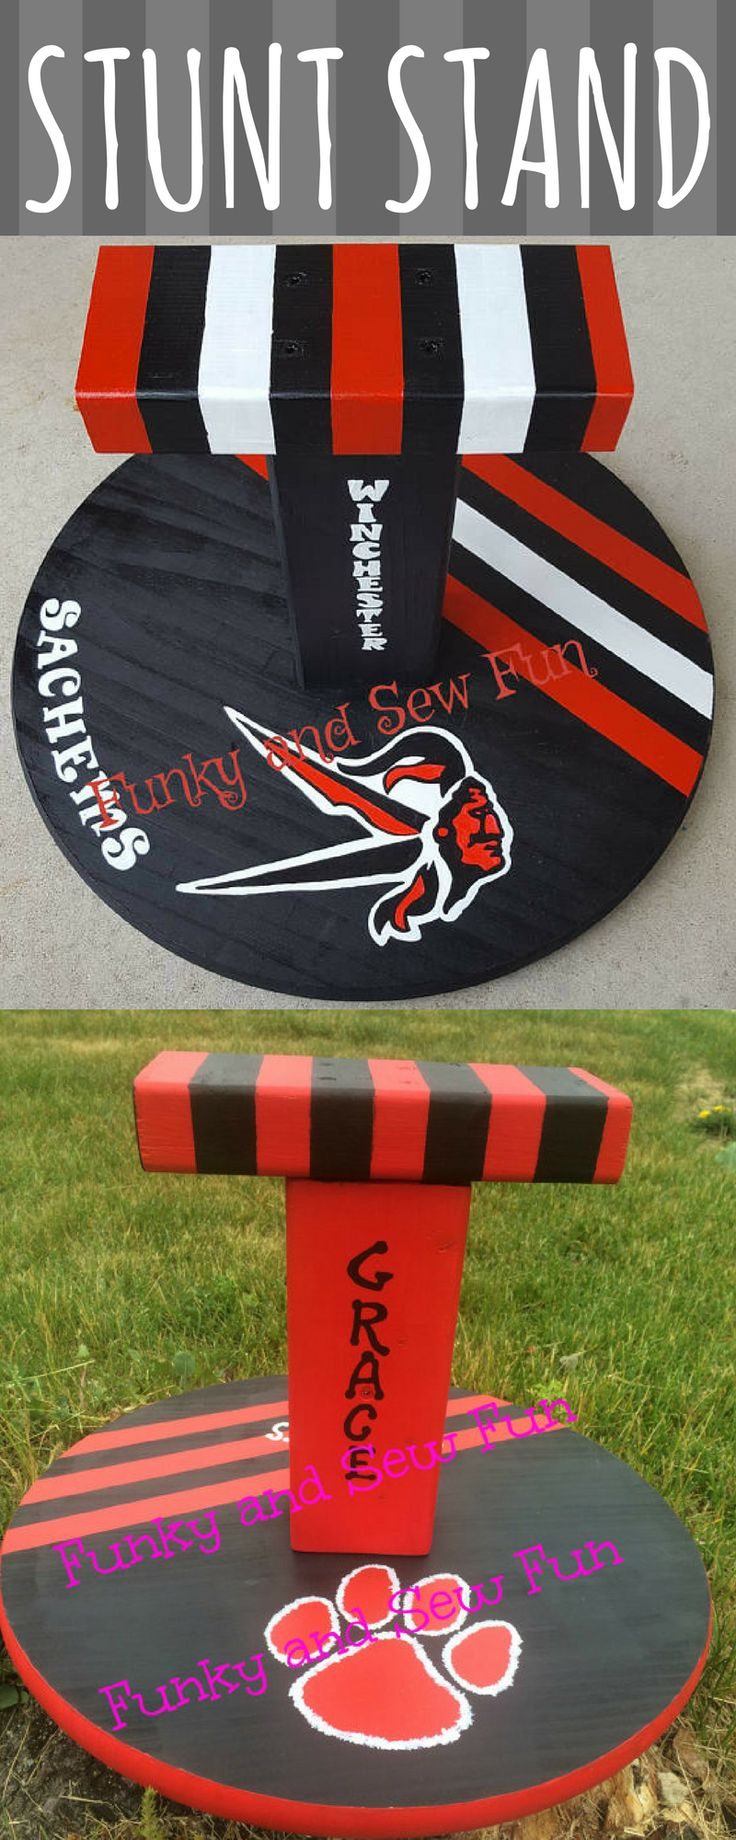 $65. Wooden custom cheer stand. Stunt stand personalized with your name, mascot, colors! Cheerleader gift. Flyer stunt practice stand. #cheerleading #ad